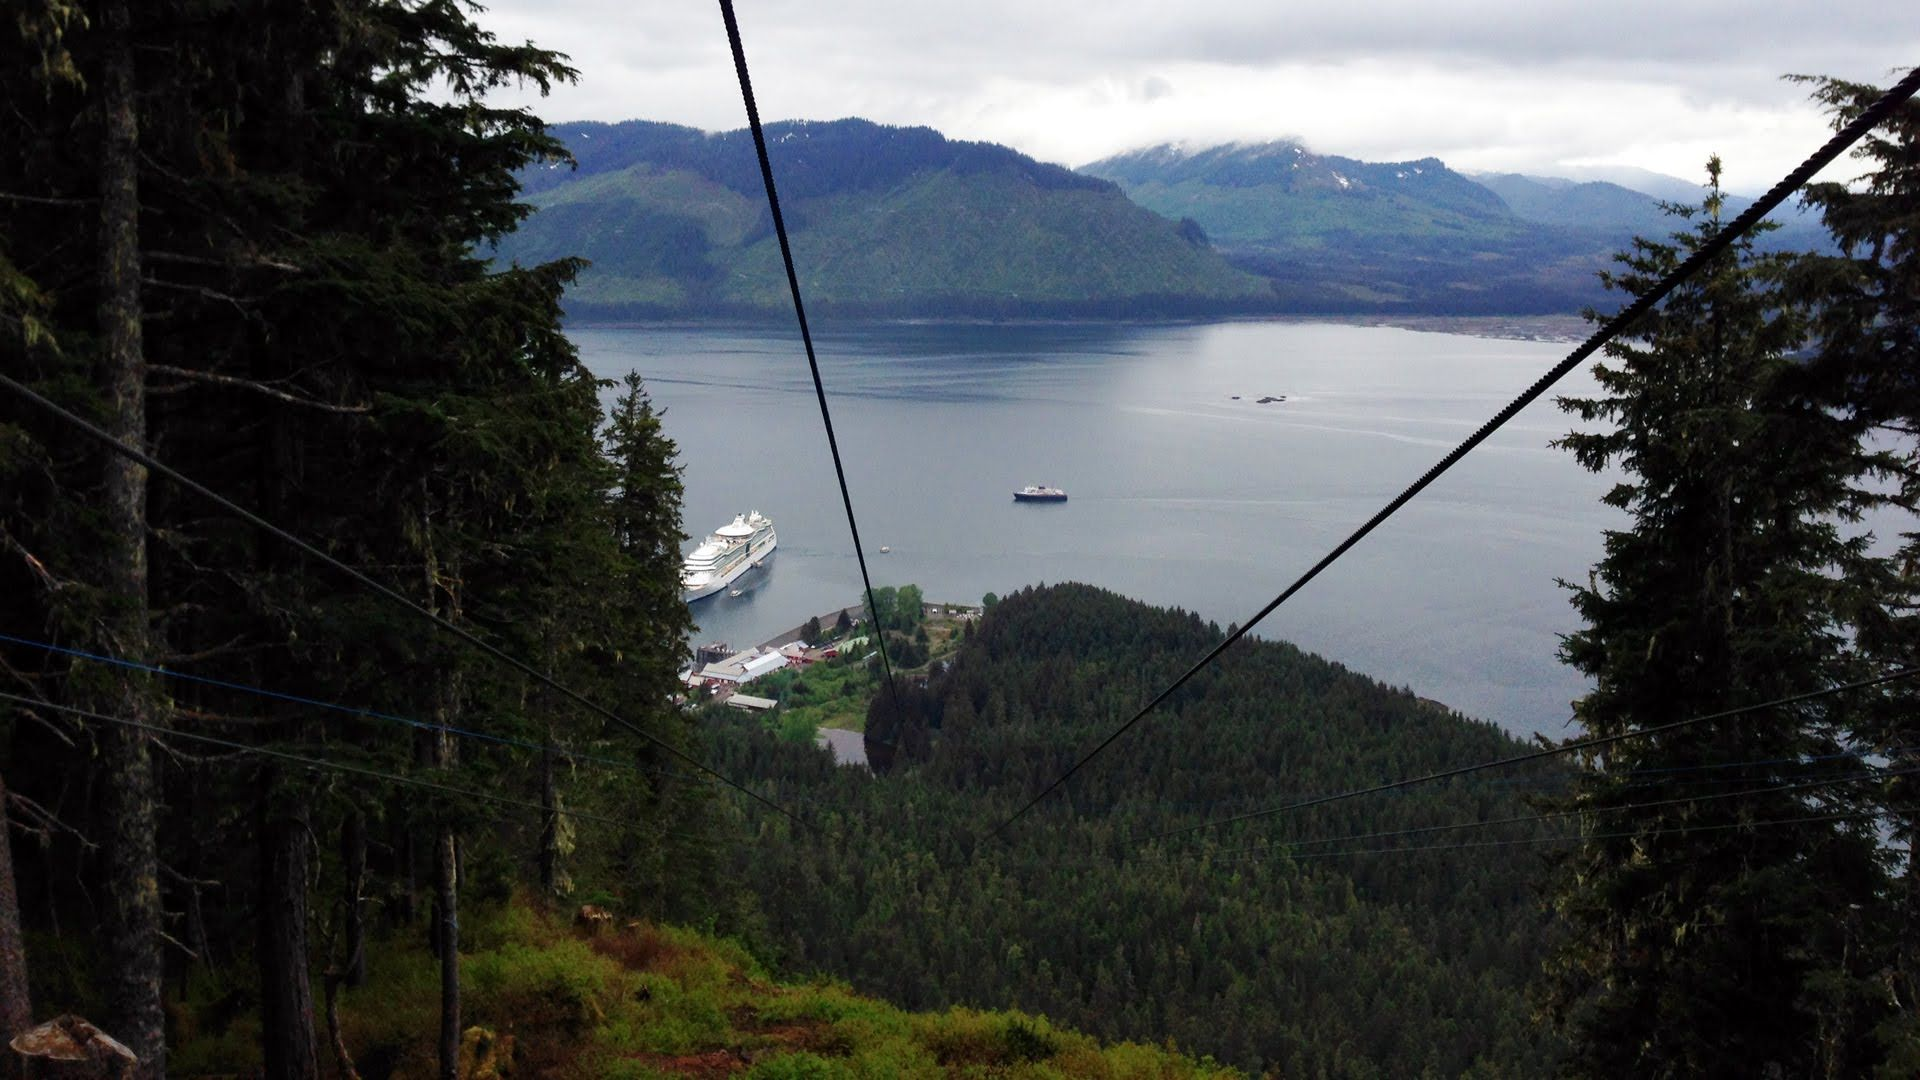 LONGEST ZIP WIRE: The zip line, which features a steel cable ...